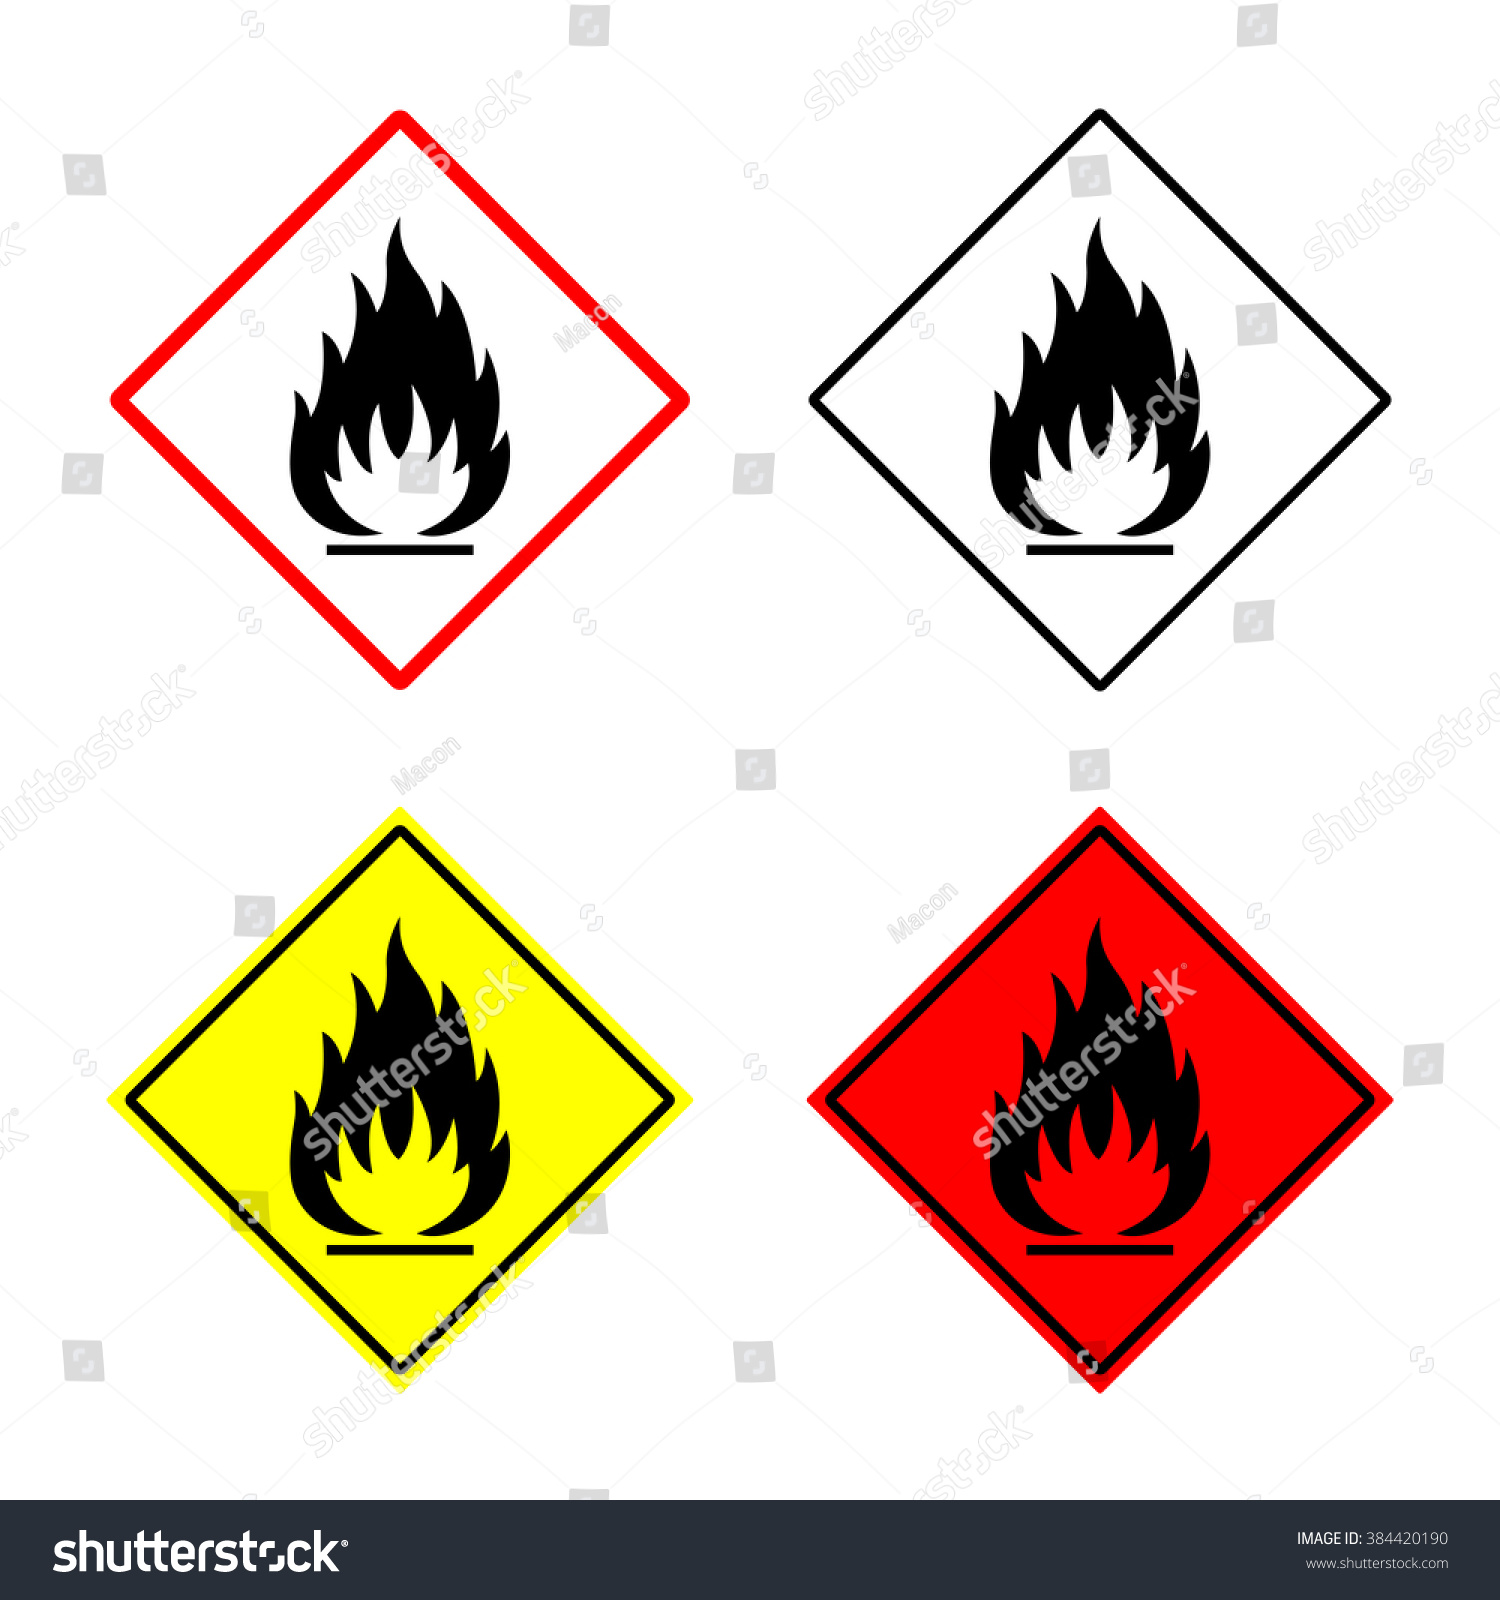 Flammable sign symbol placed rhomb fire stock vector 384420190 flammable sign or symbol placed in rhomb fire hazard emblem isolated on white background biocorpaavc Gallery